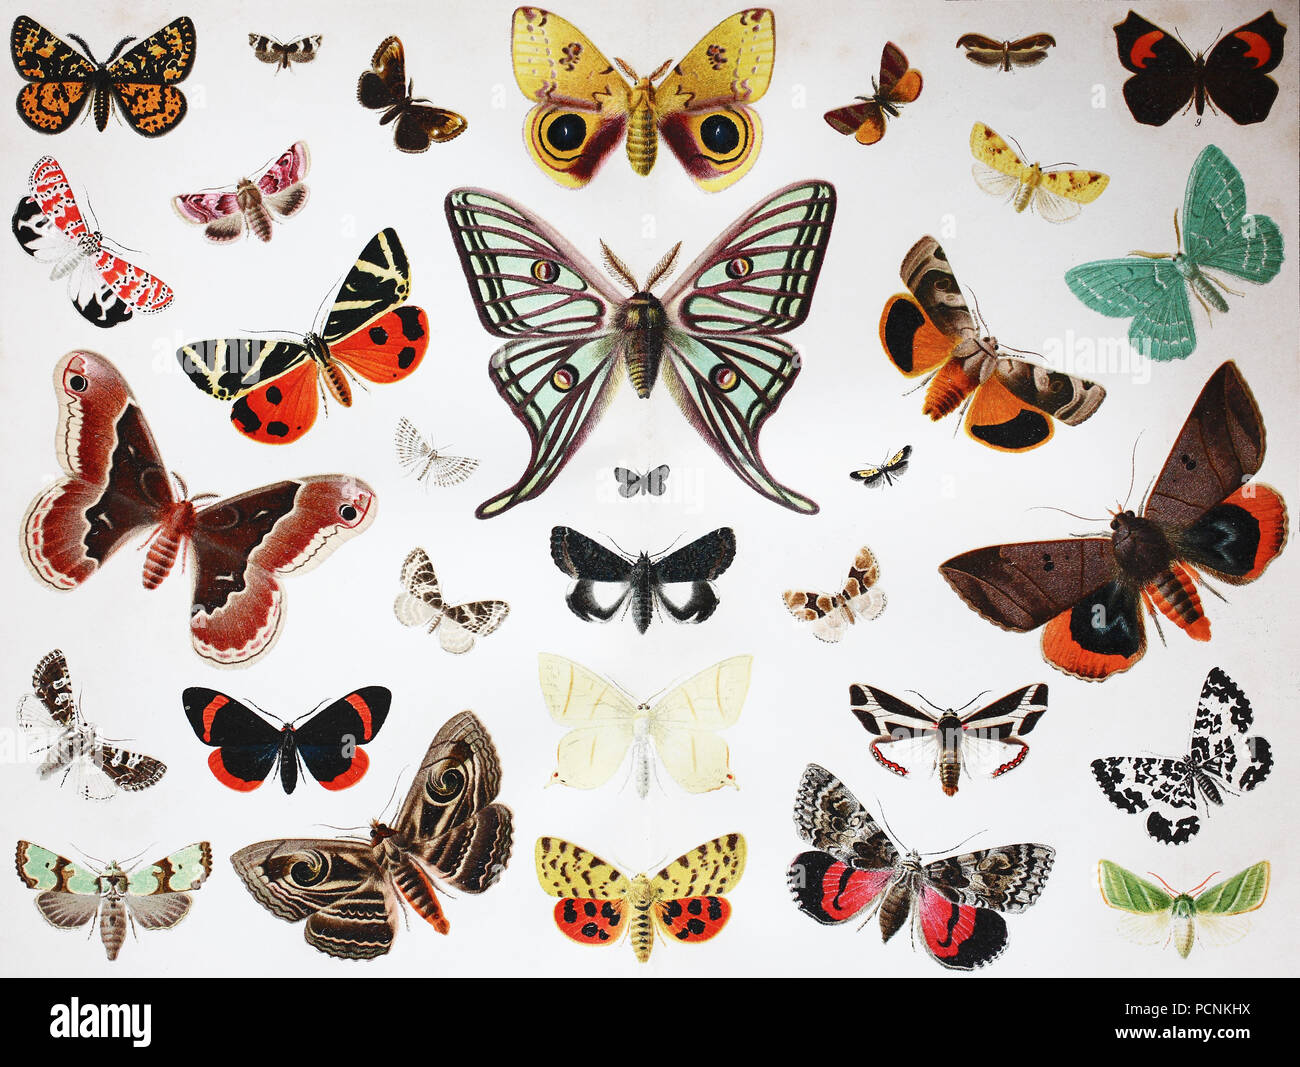 various butterfly insects, digital improved reproduction of an historical image from the year 1885 - Stock Image